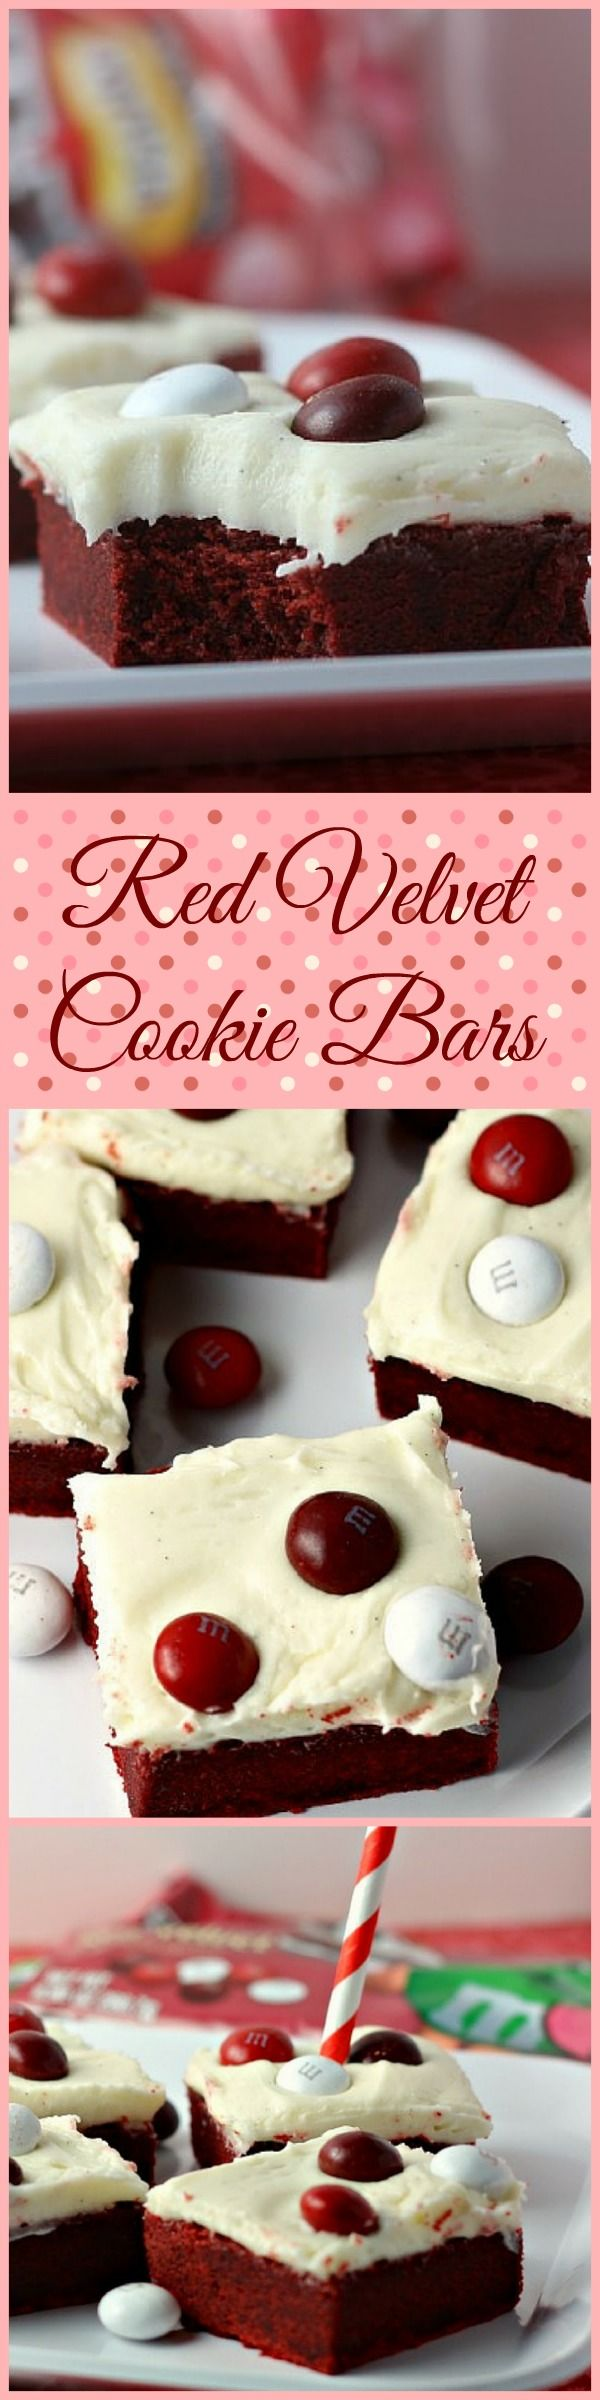 Red Velvet Cookie Bars with Cream Cheese Frosting | Renee's Kitchen Adventures: OMG...one great cookie bar!   #RedVelvetLove #ad #cbias